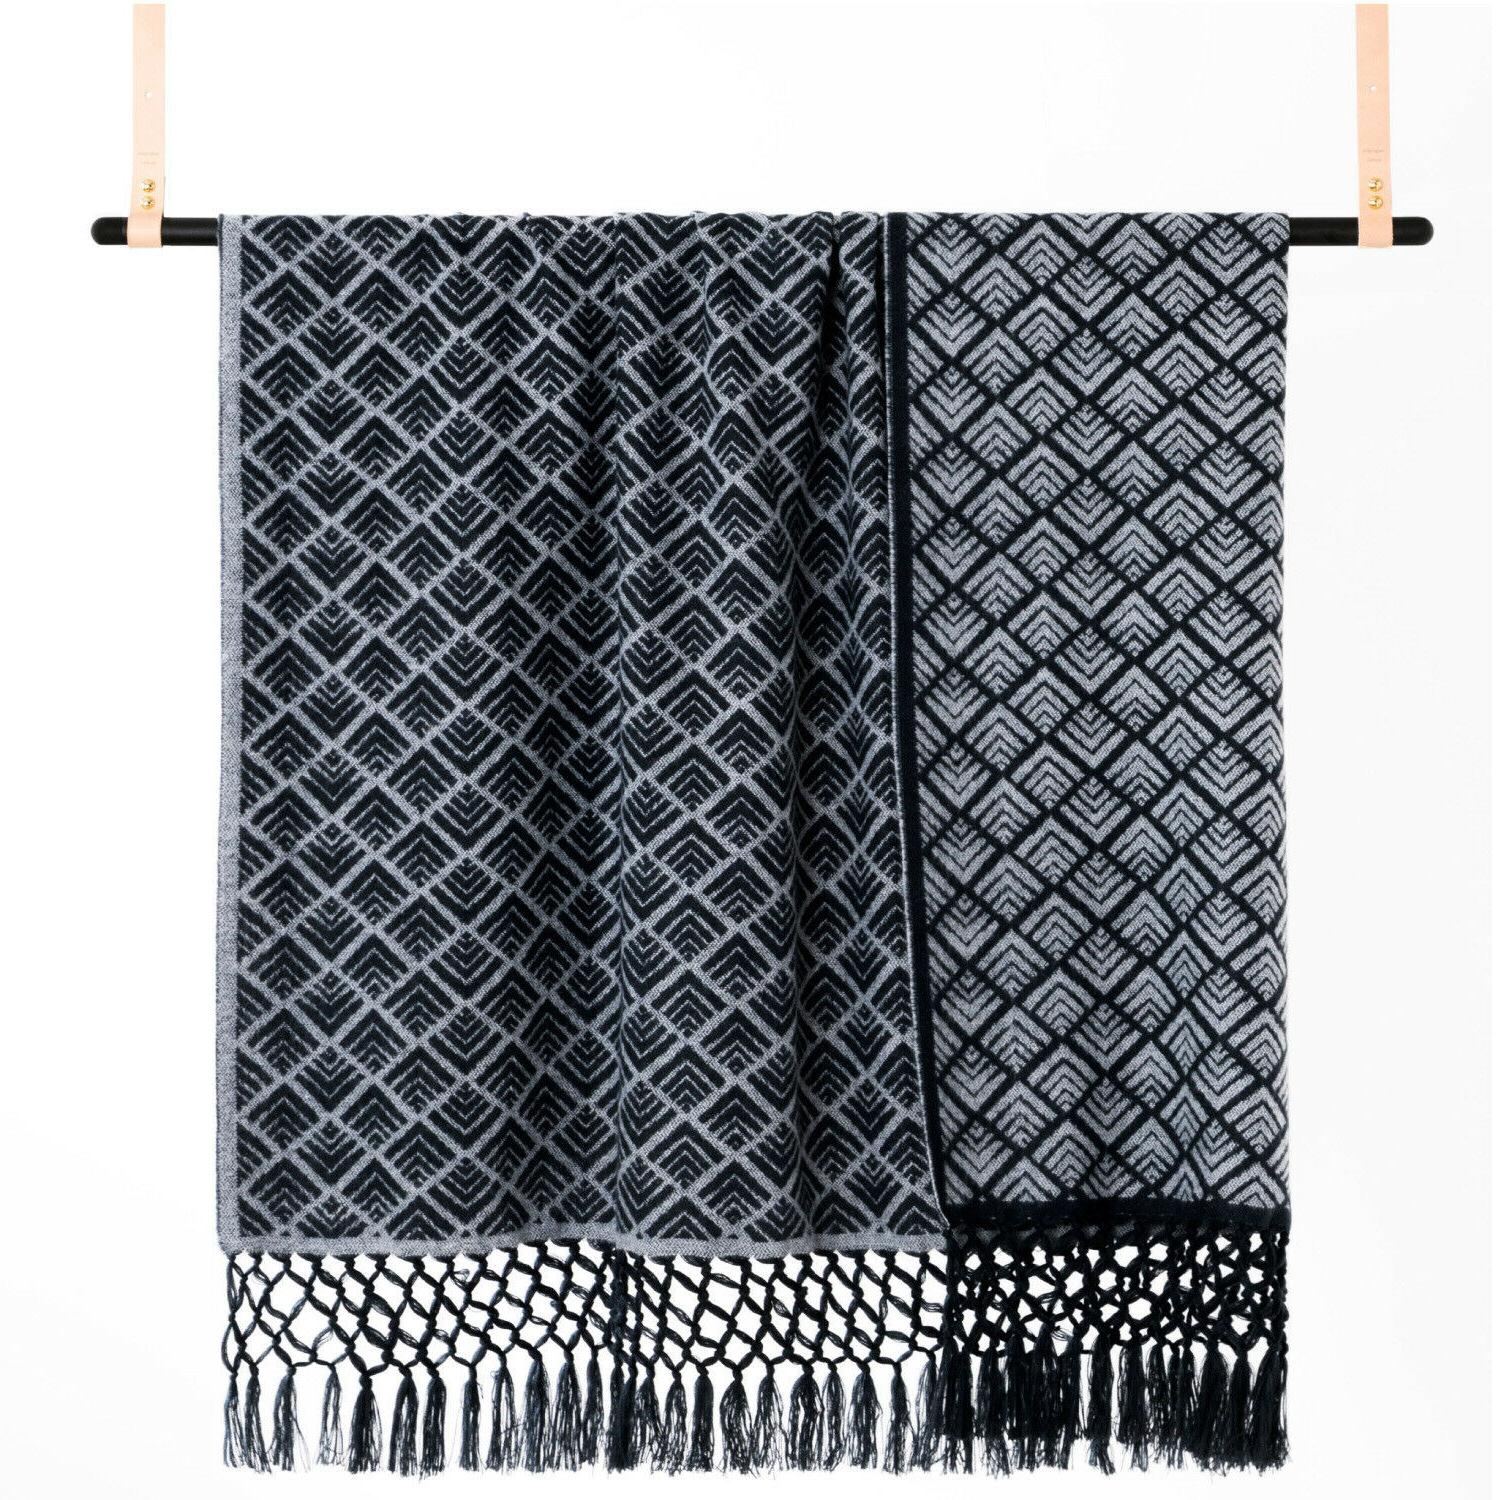 throw blanket hand woven fringe soft cozy